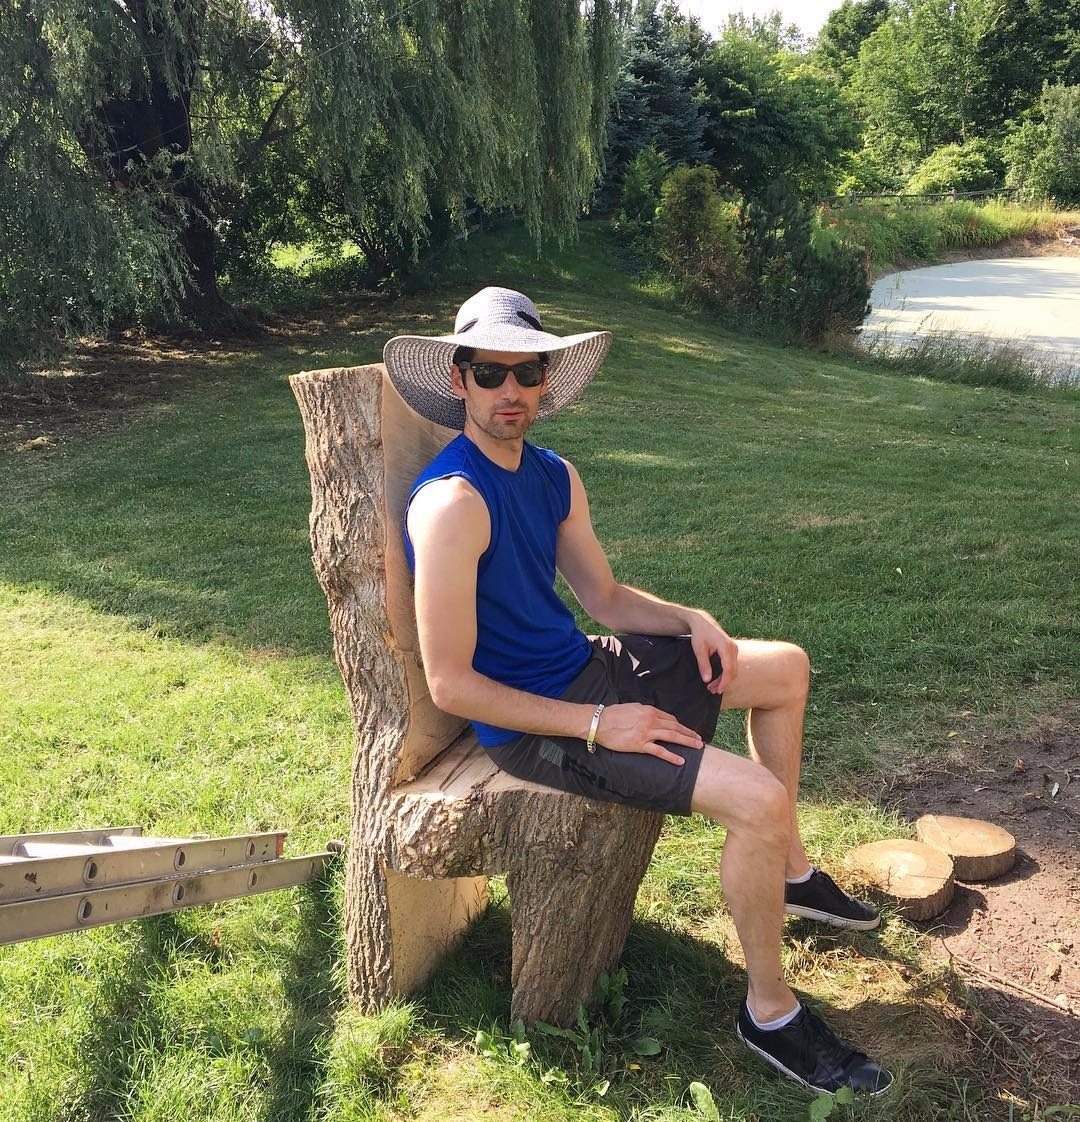 Ben Aaron is wearing a sleeveless blue T-shirt and black half-pant. He is wearing a hat and sunglasses. He is sitting on a tree chair.